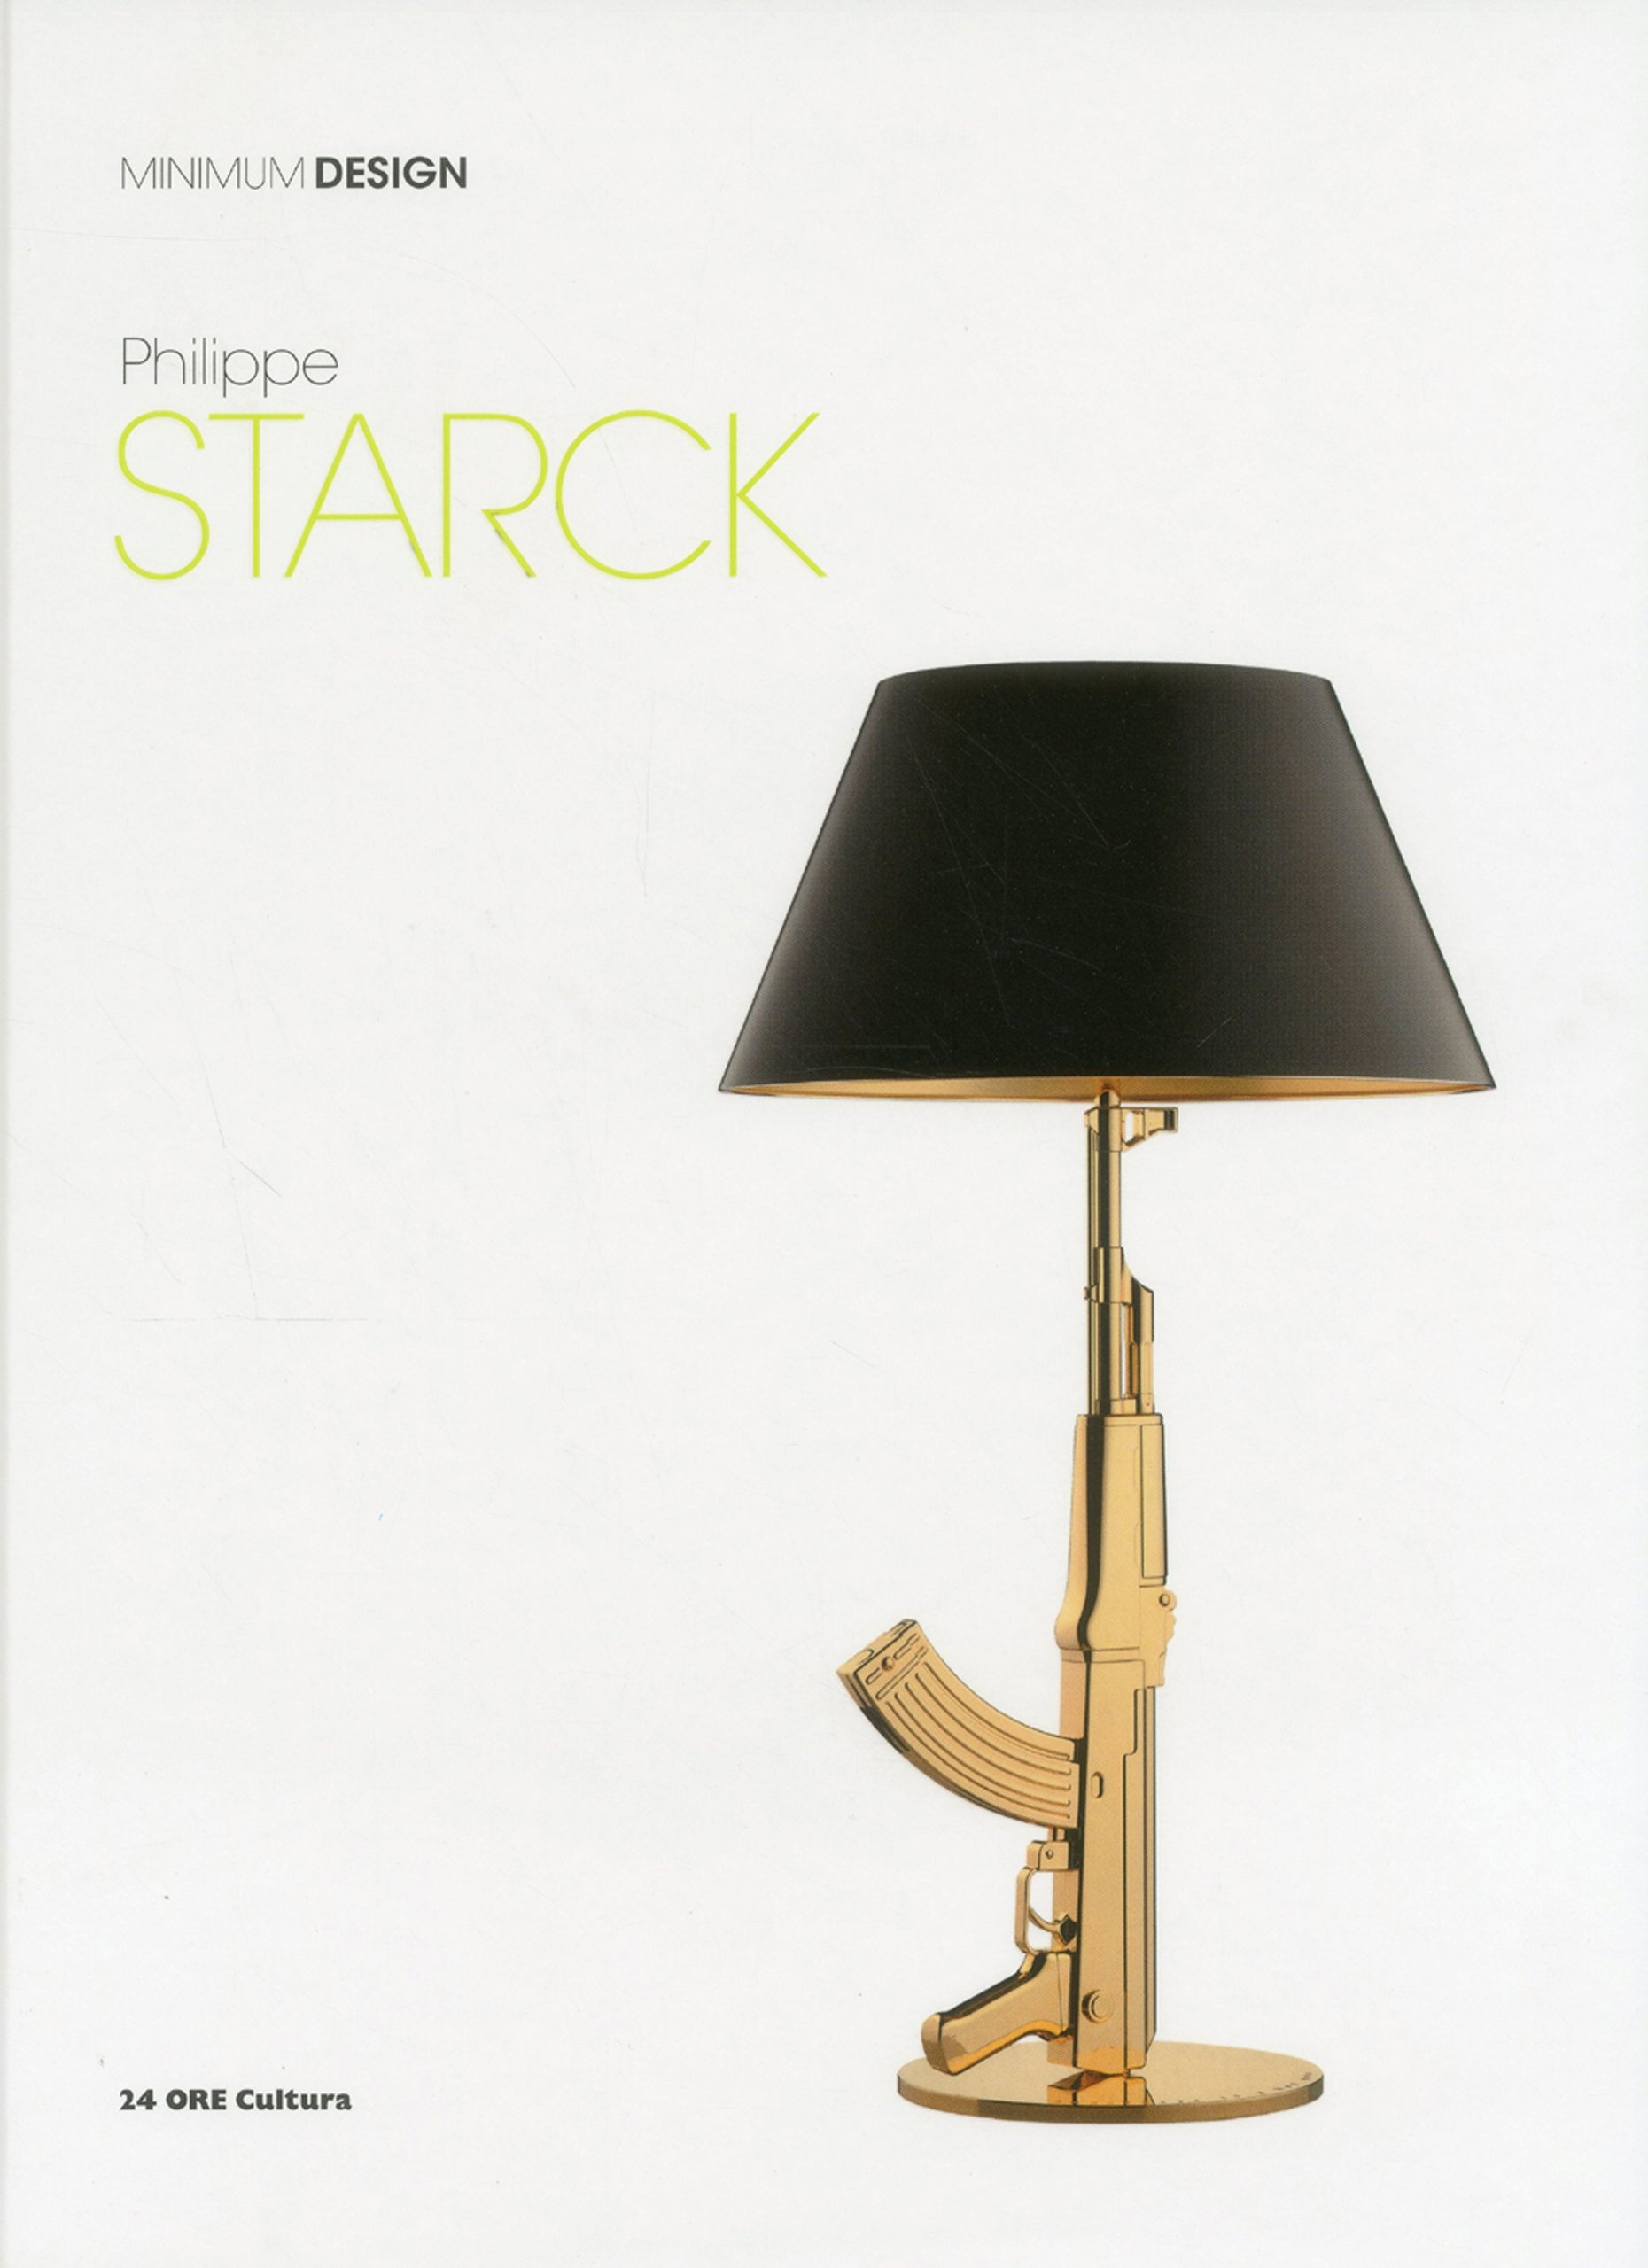 Philippe Starck: Minimum Design: Amazon.co.uk: Christina Morozzi:  9788866480303: Books